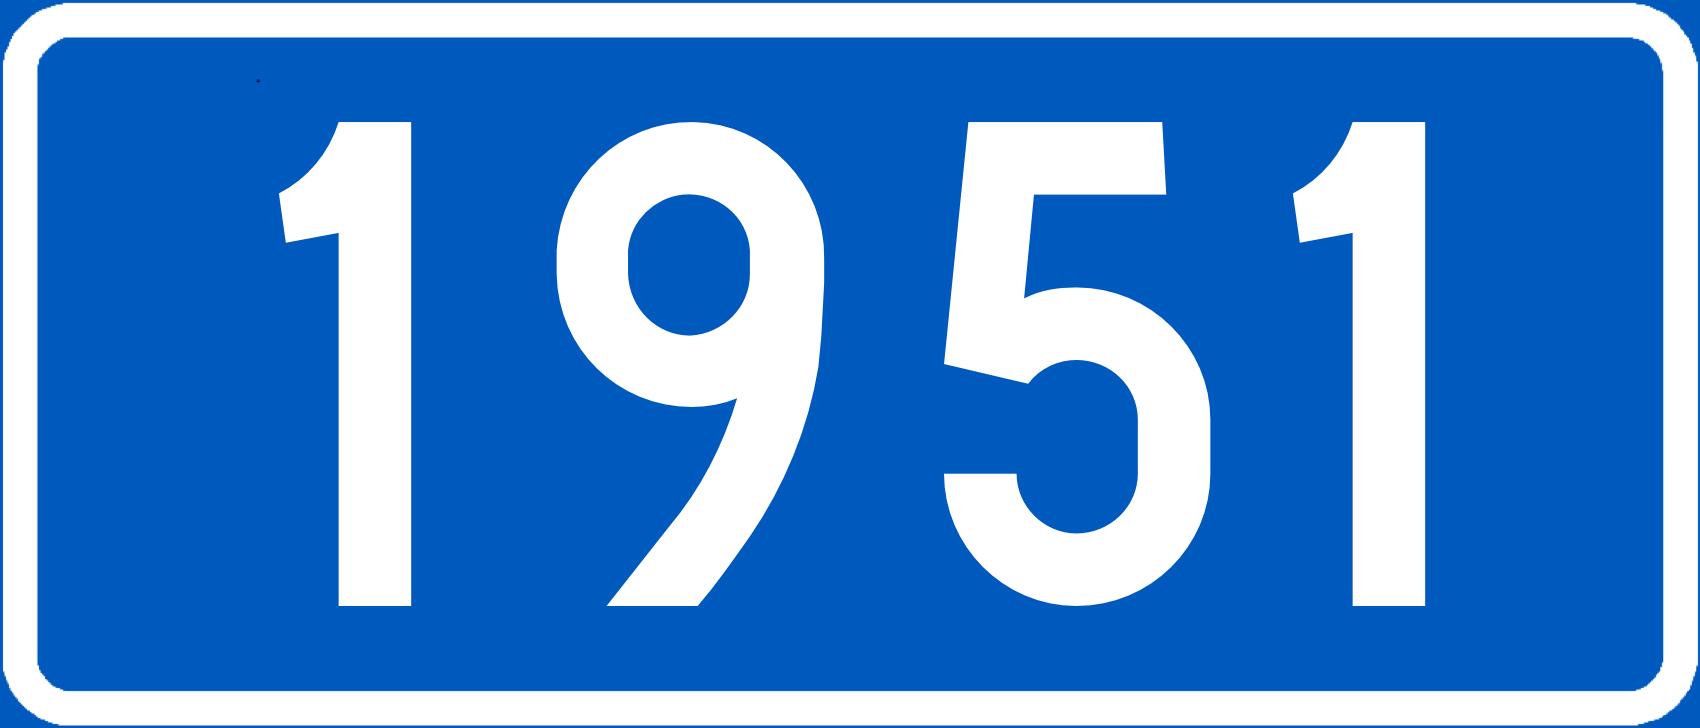 File:Route 1951-FIN.png - Wikimedia Commons